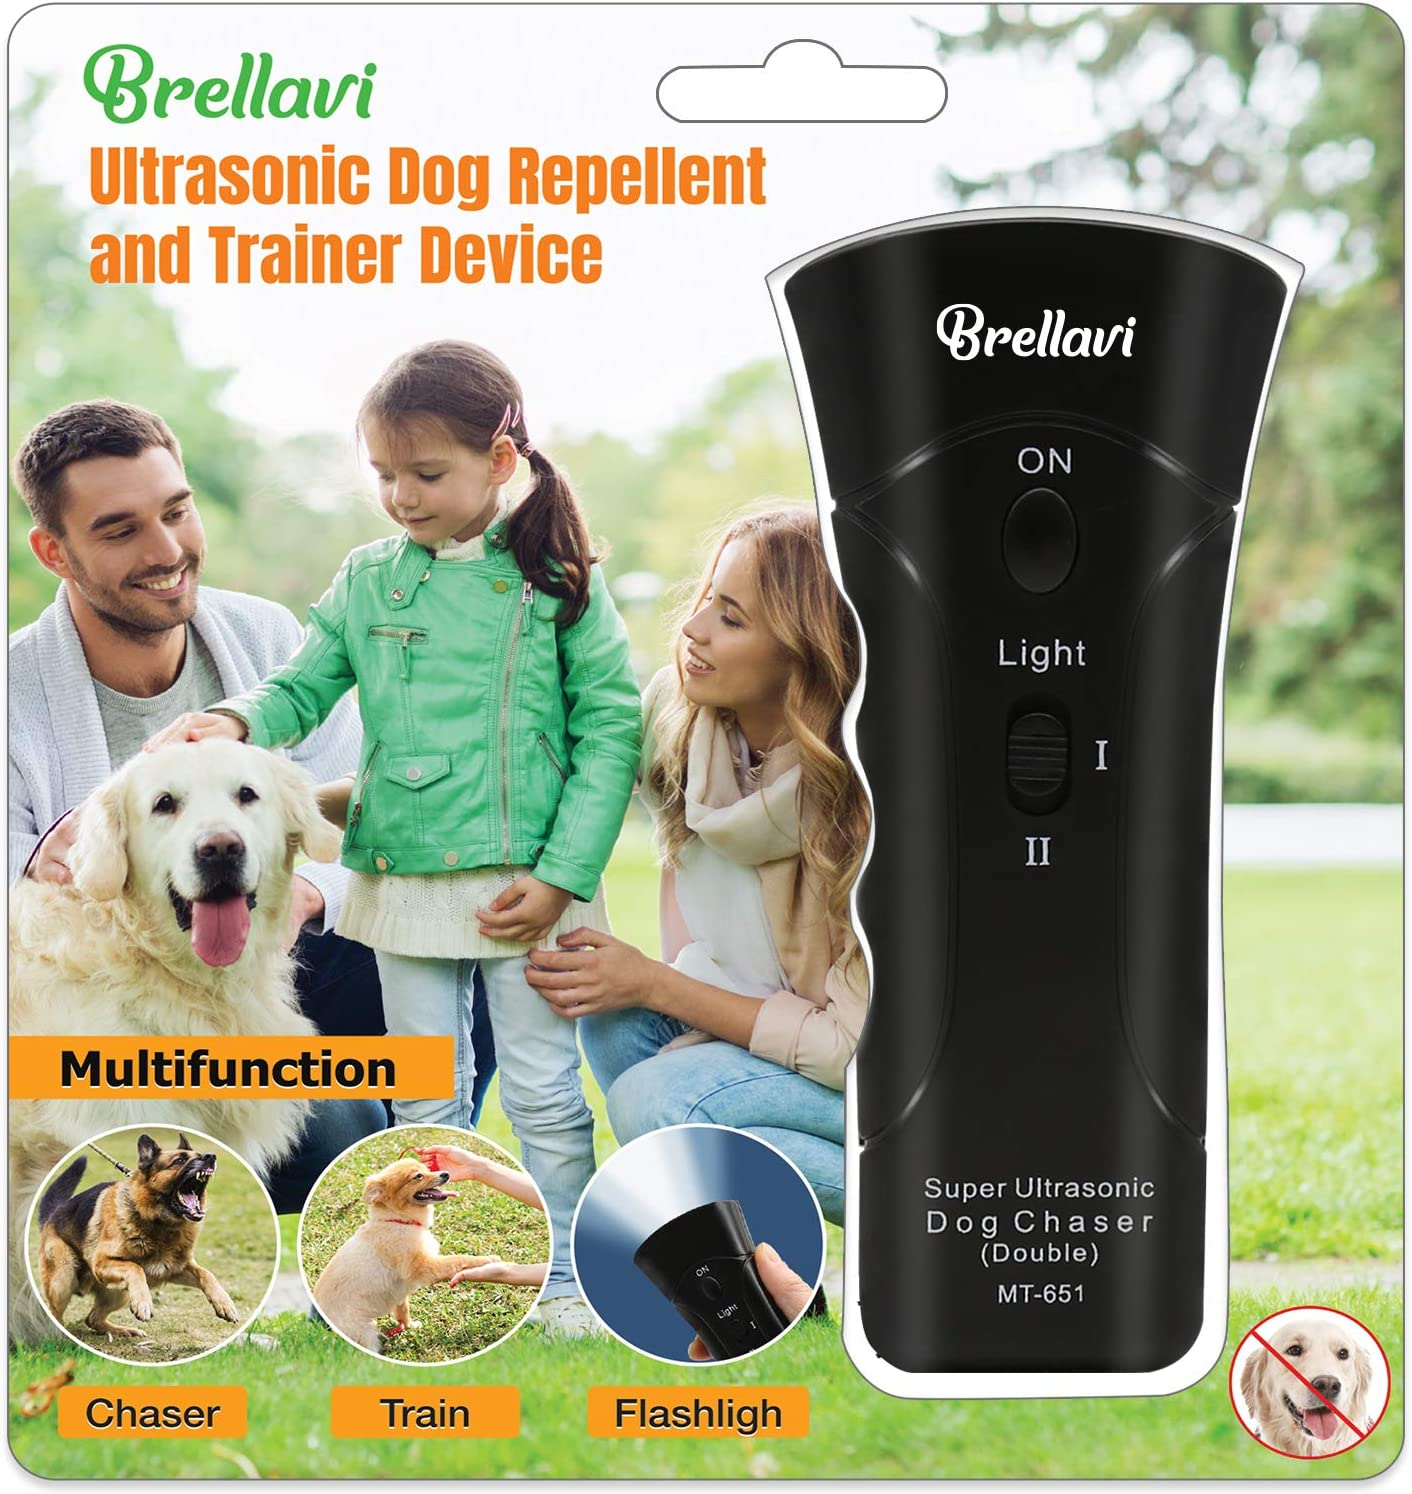 Dog Repellent and Trainer, Dog Repellent Device with LED Flashlight, Dogs Good Behavior Training, Safe to Walk The Dog Outdoor, Best Handheld Dog Repellent and Trainer, Black